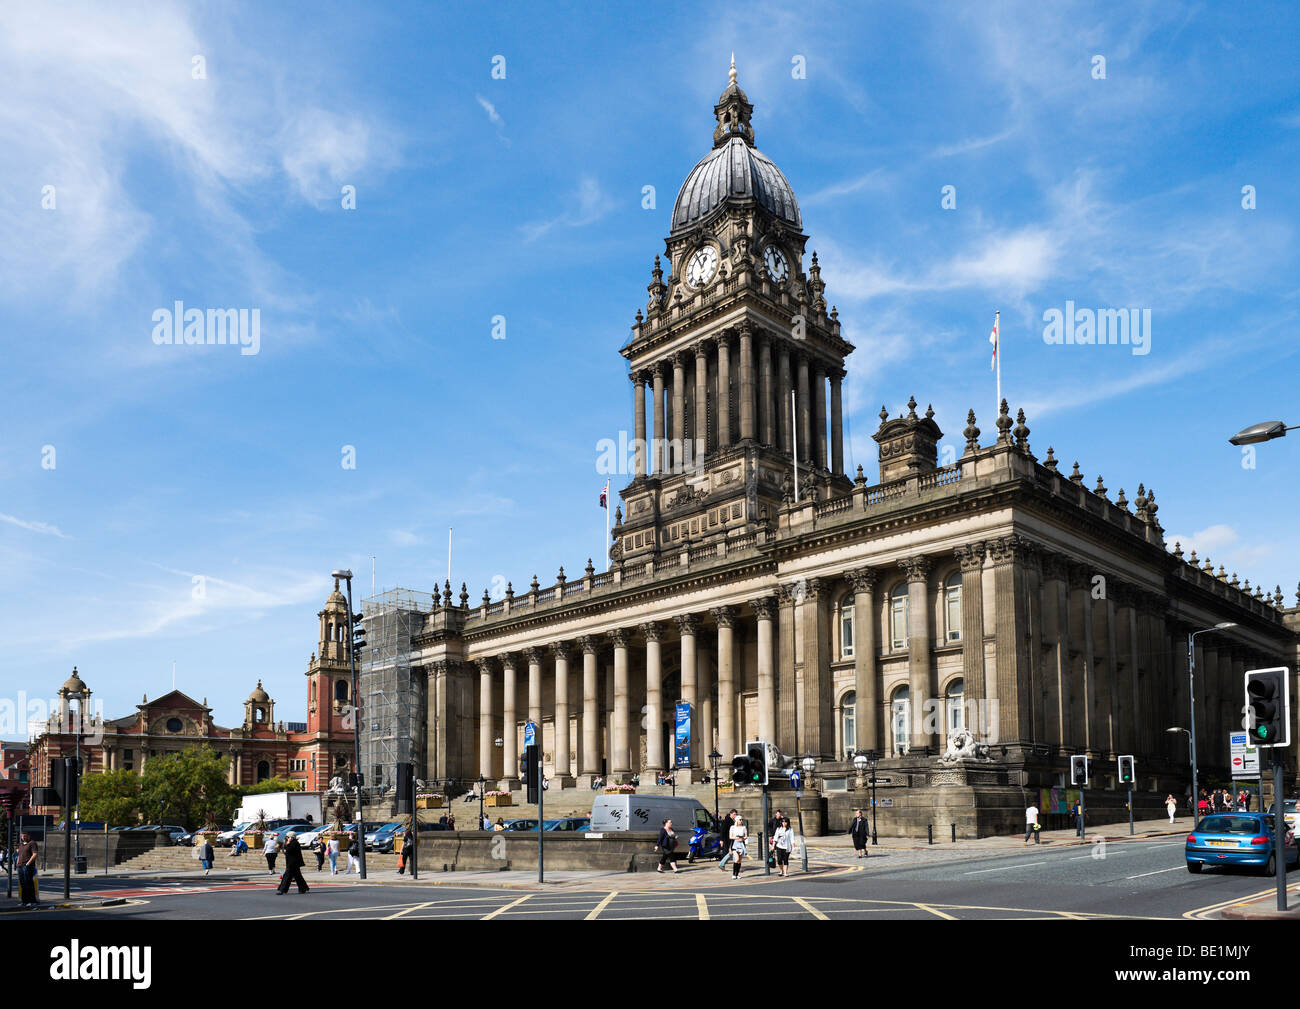 Leeds Town Hall designed by the local architect Cuthbert Brodrick, Leeds, West Yorkshire, England - Stock Image